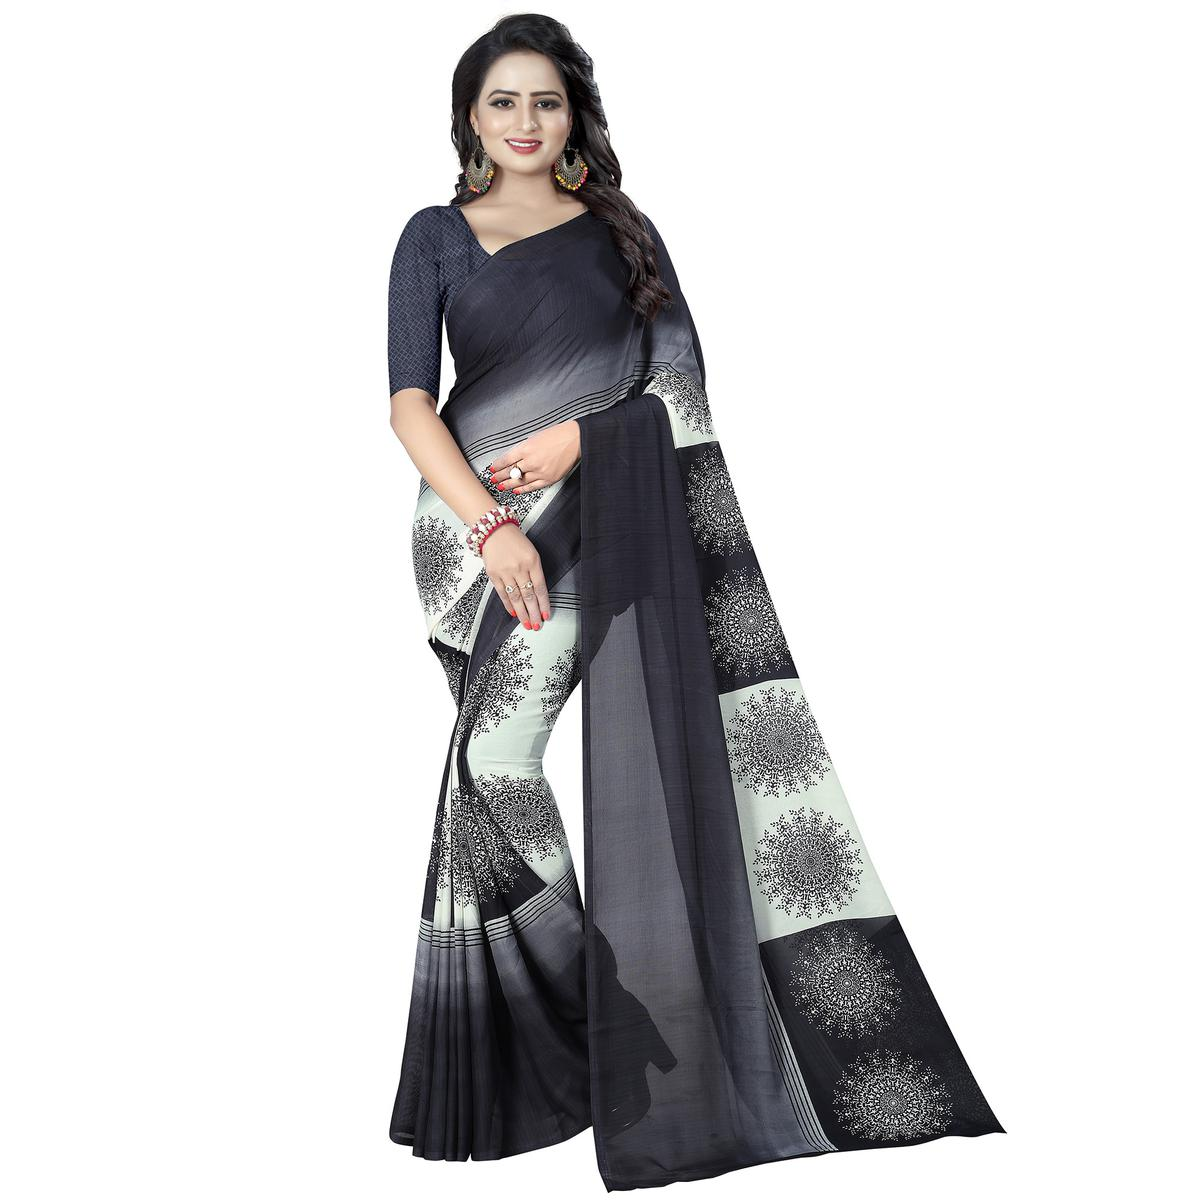 Captivating Black - Grey Colored Casual Wear Printed Georgette Saree